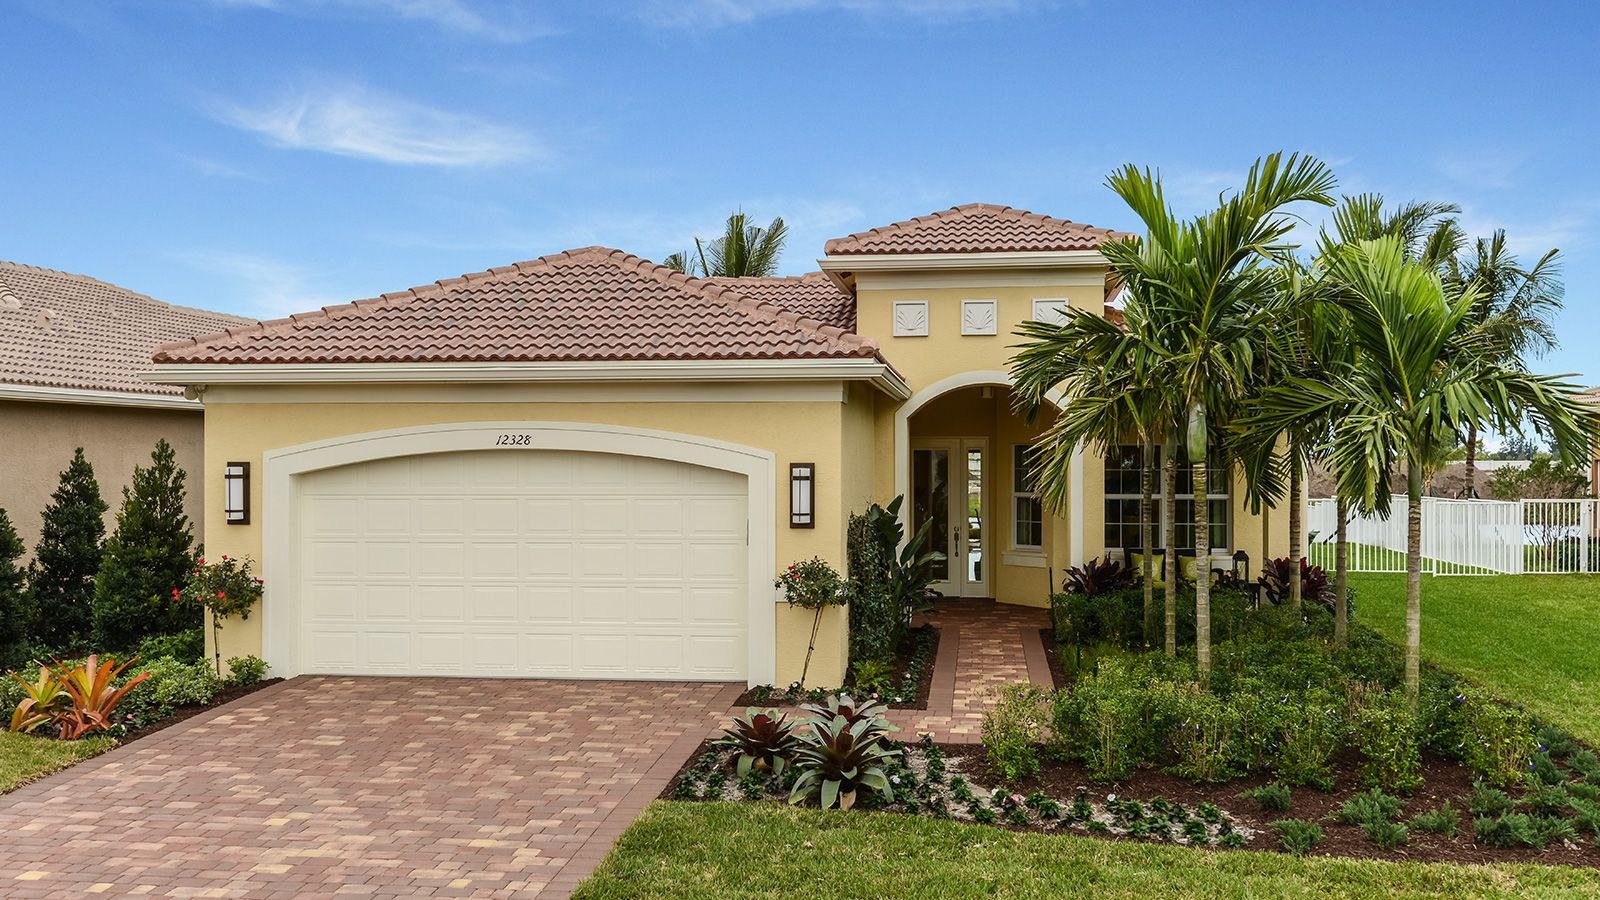 Valencia Bay By Gl Homes 12802 Whitehorn Way Boynton Beach Fl 33473 Looking For A Beautiful 55 And Older Community In